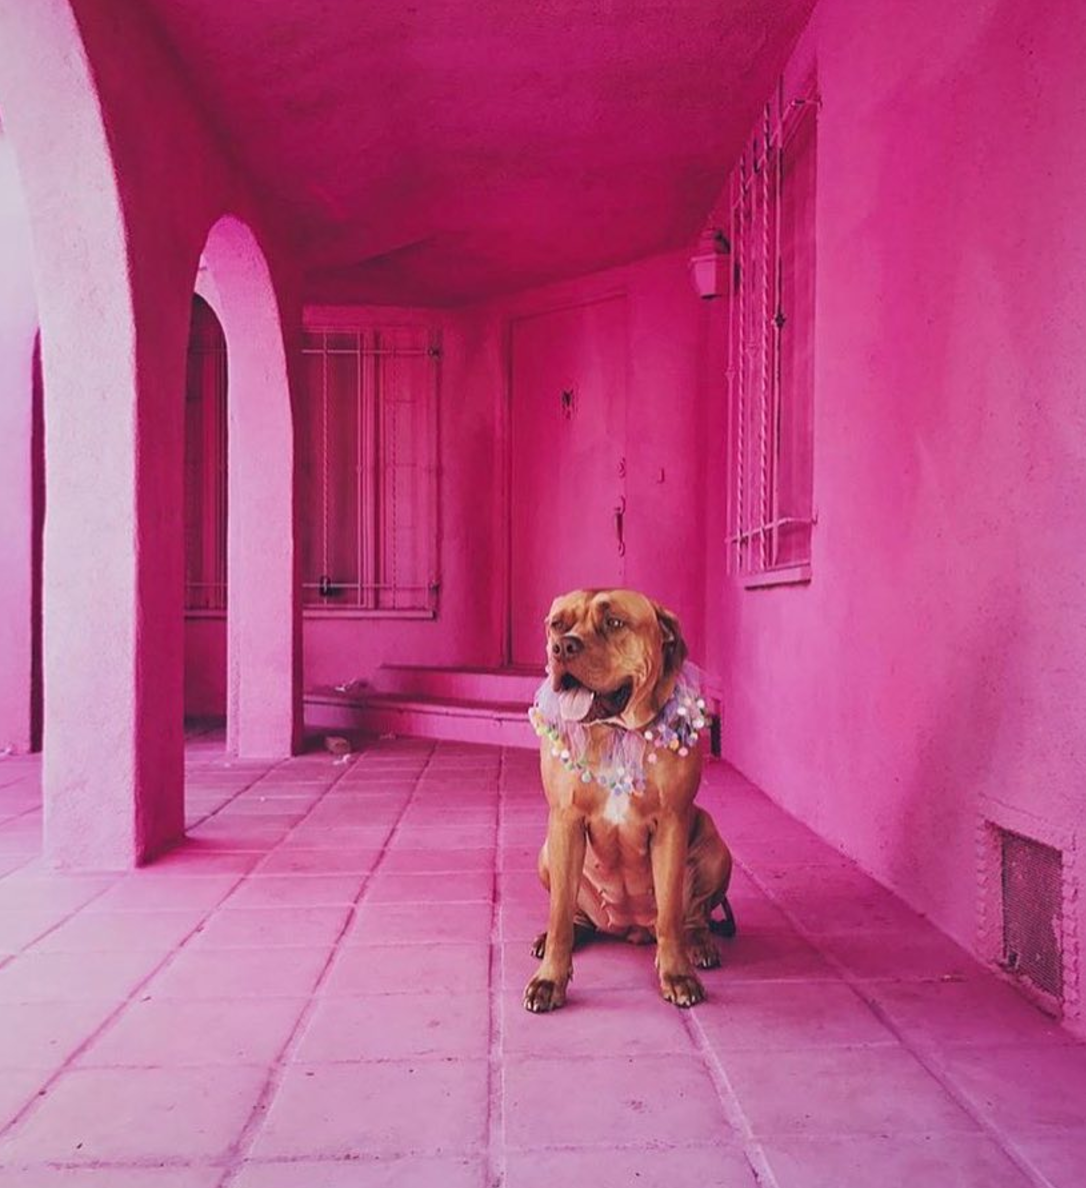 siatheboerboel pink house by themostfamousartist